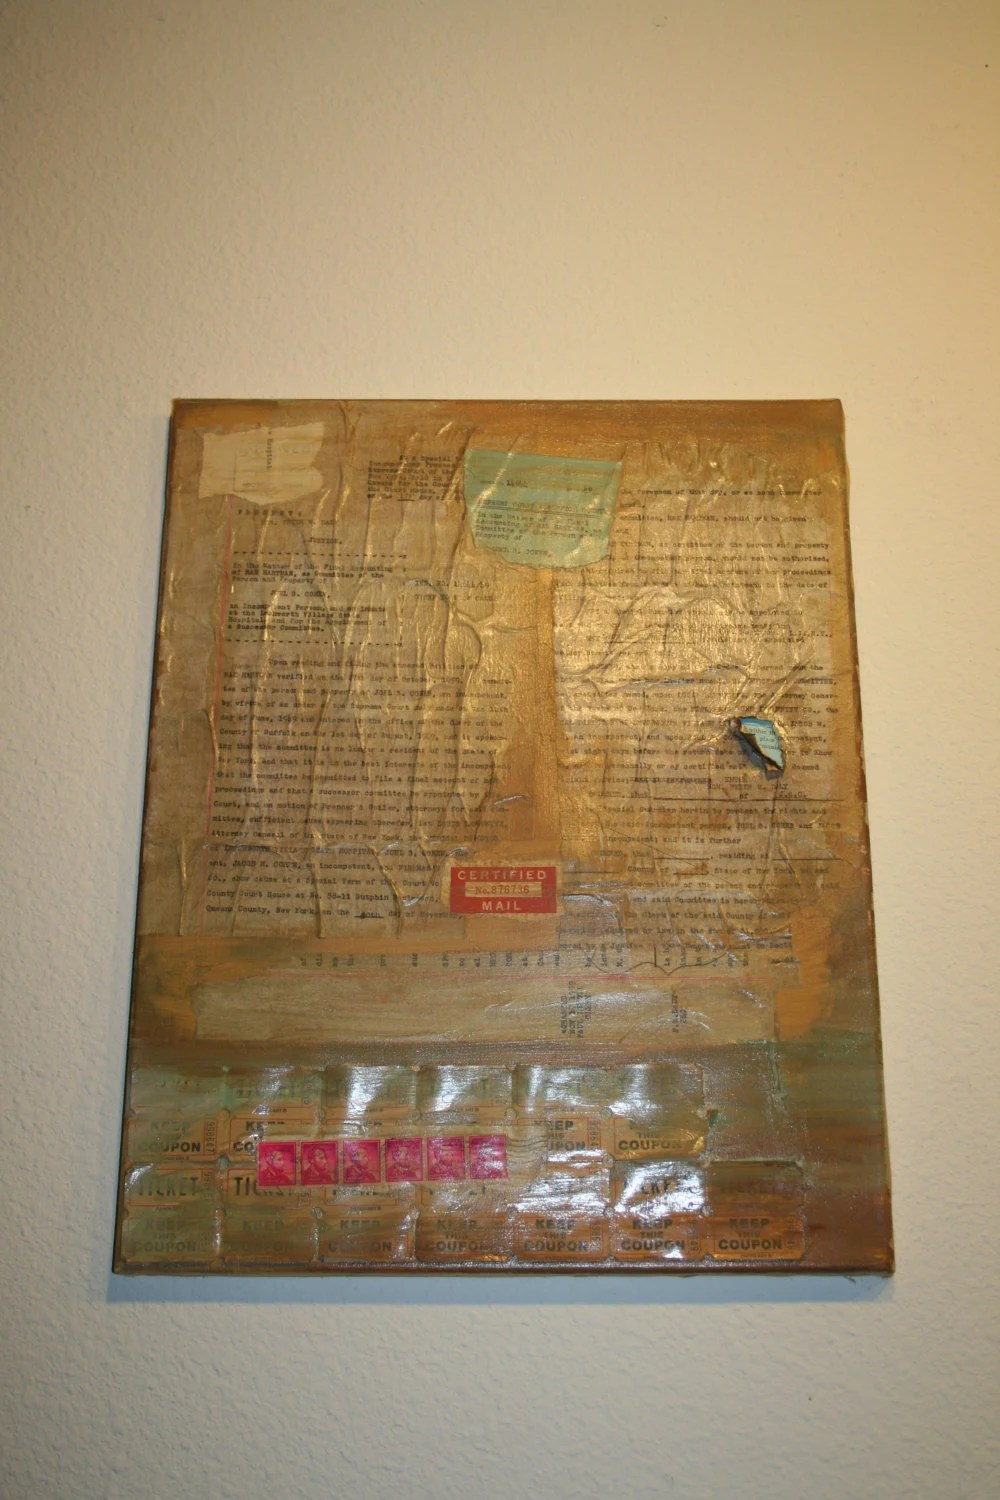 DECAY by Rhian Ferrer Artgland 2009 Vintage Mental Health Documents Painting Canvas 16 x 20